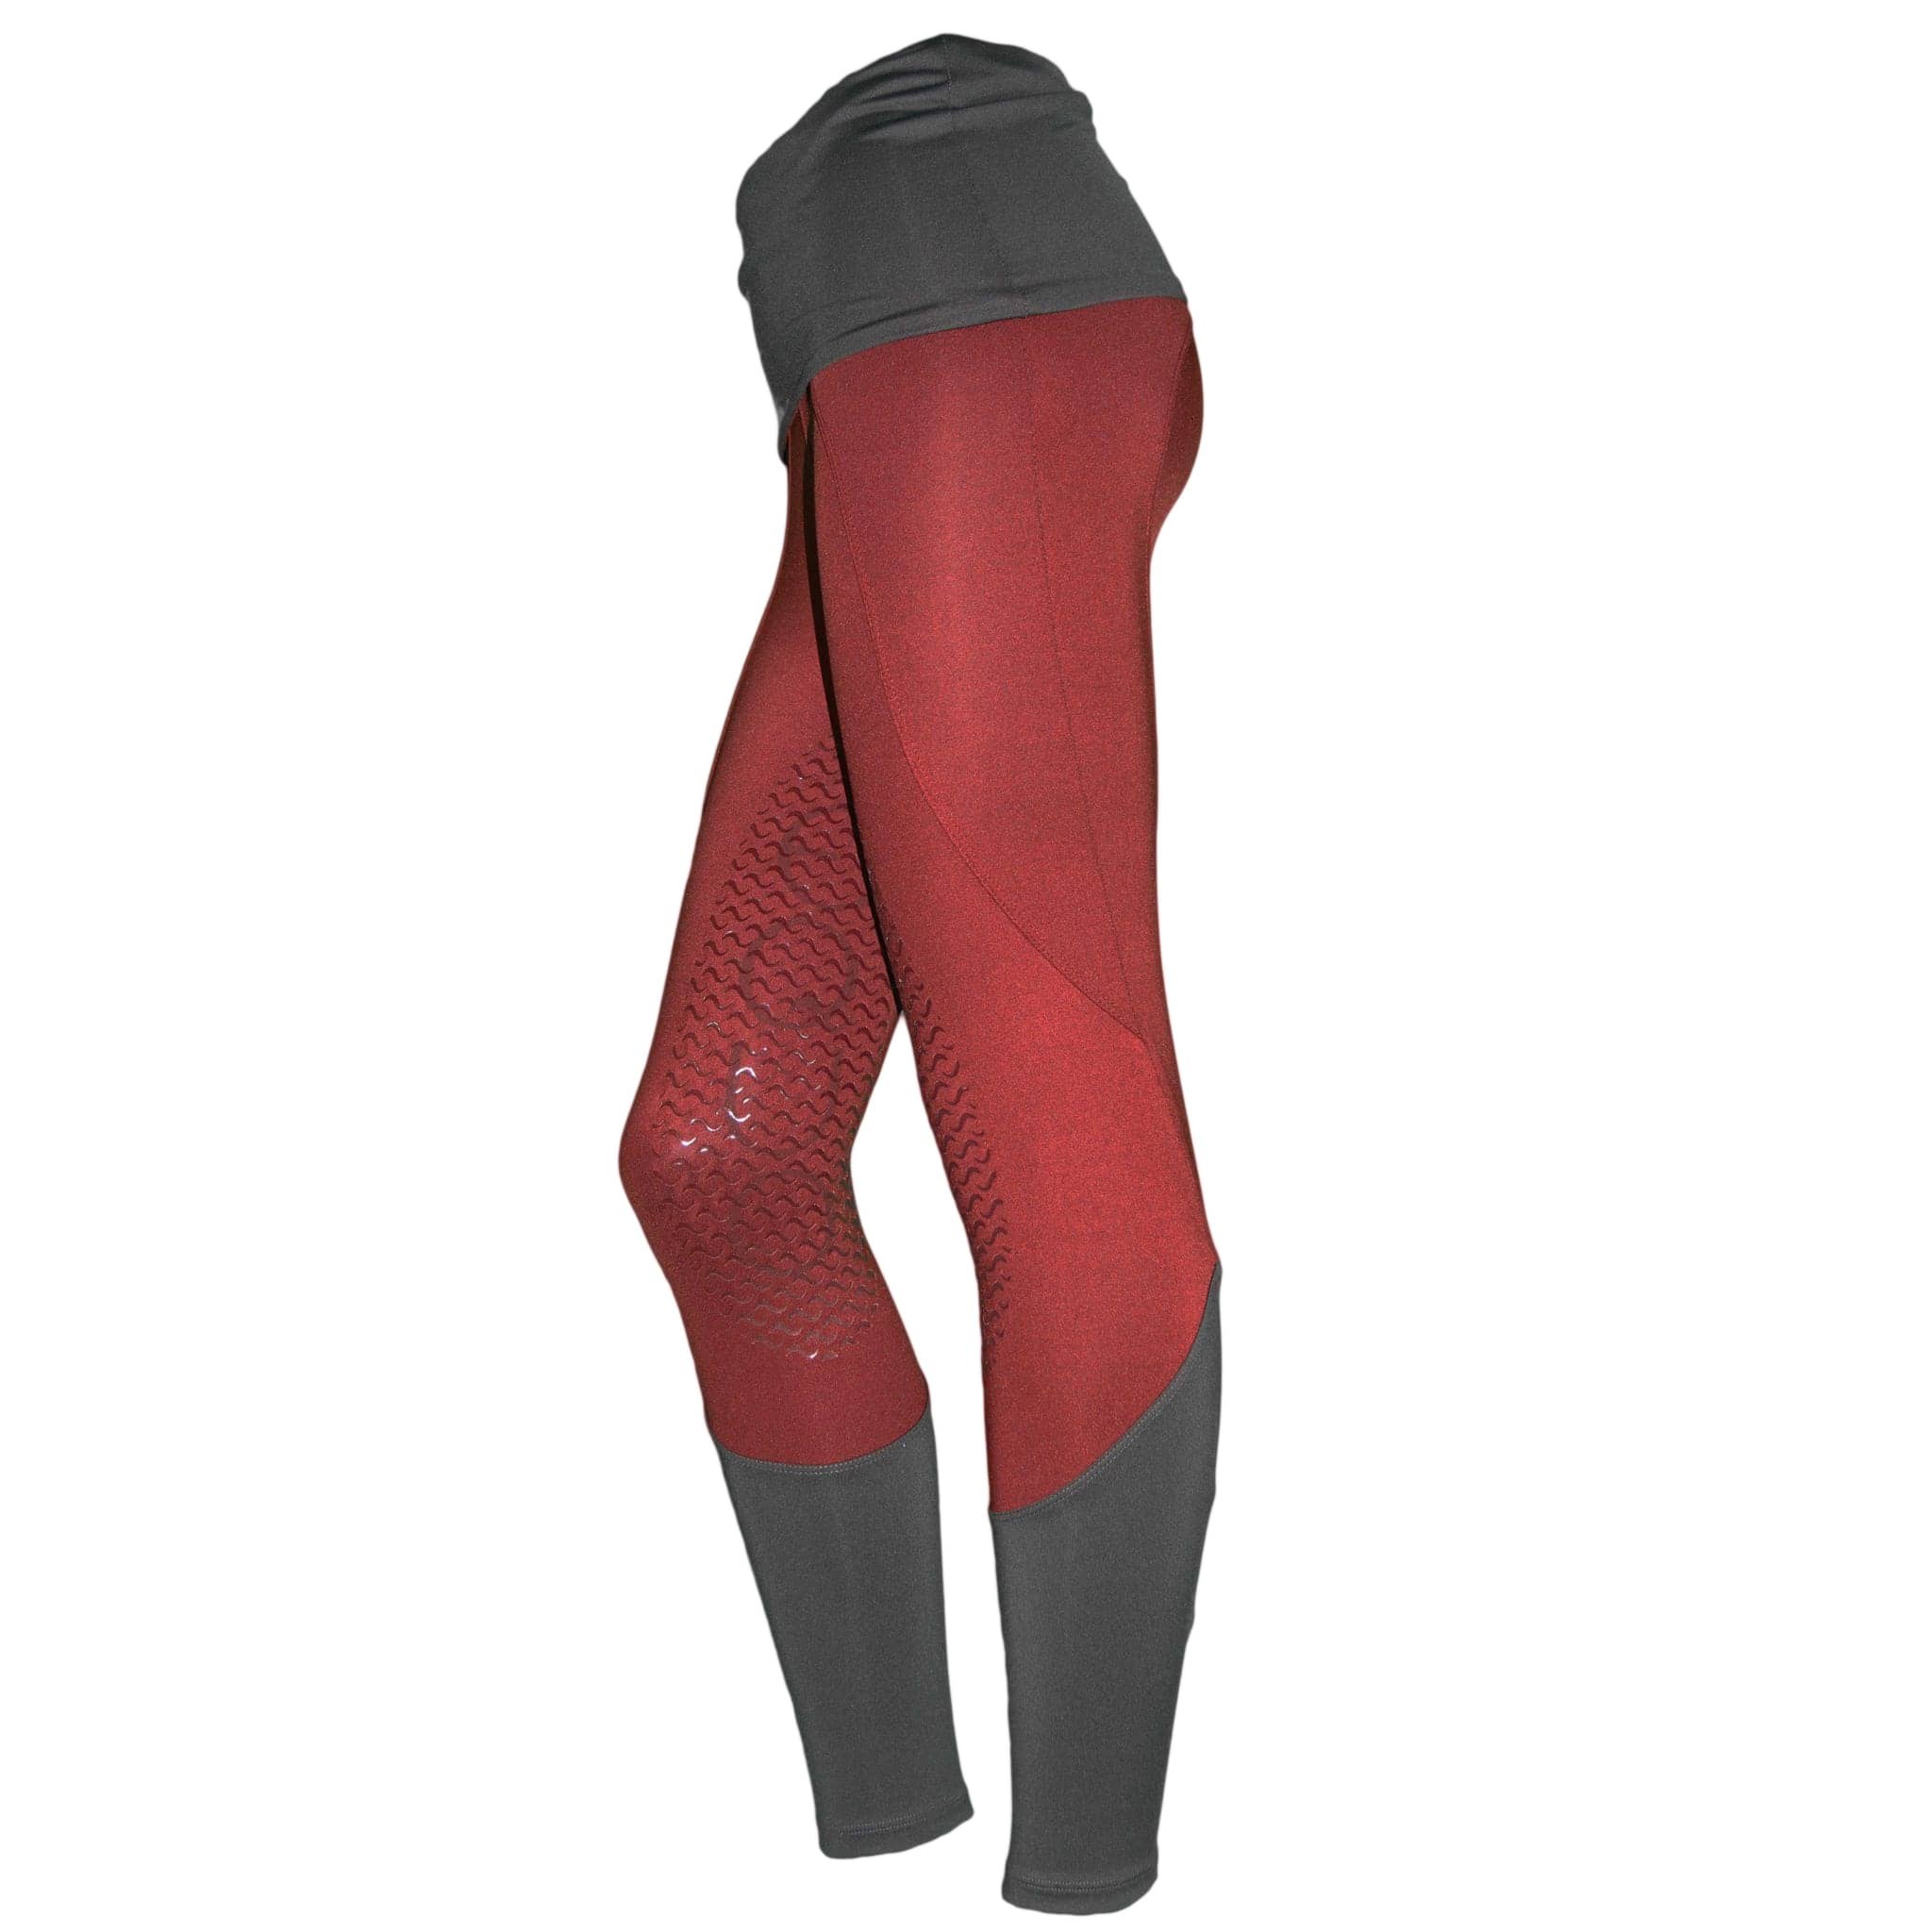 Breeches Designed for Anywhere Life Takes You